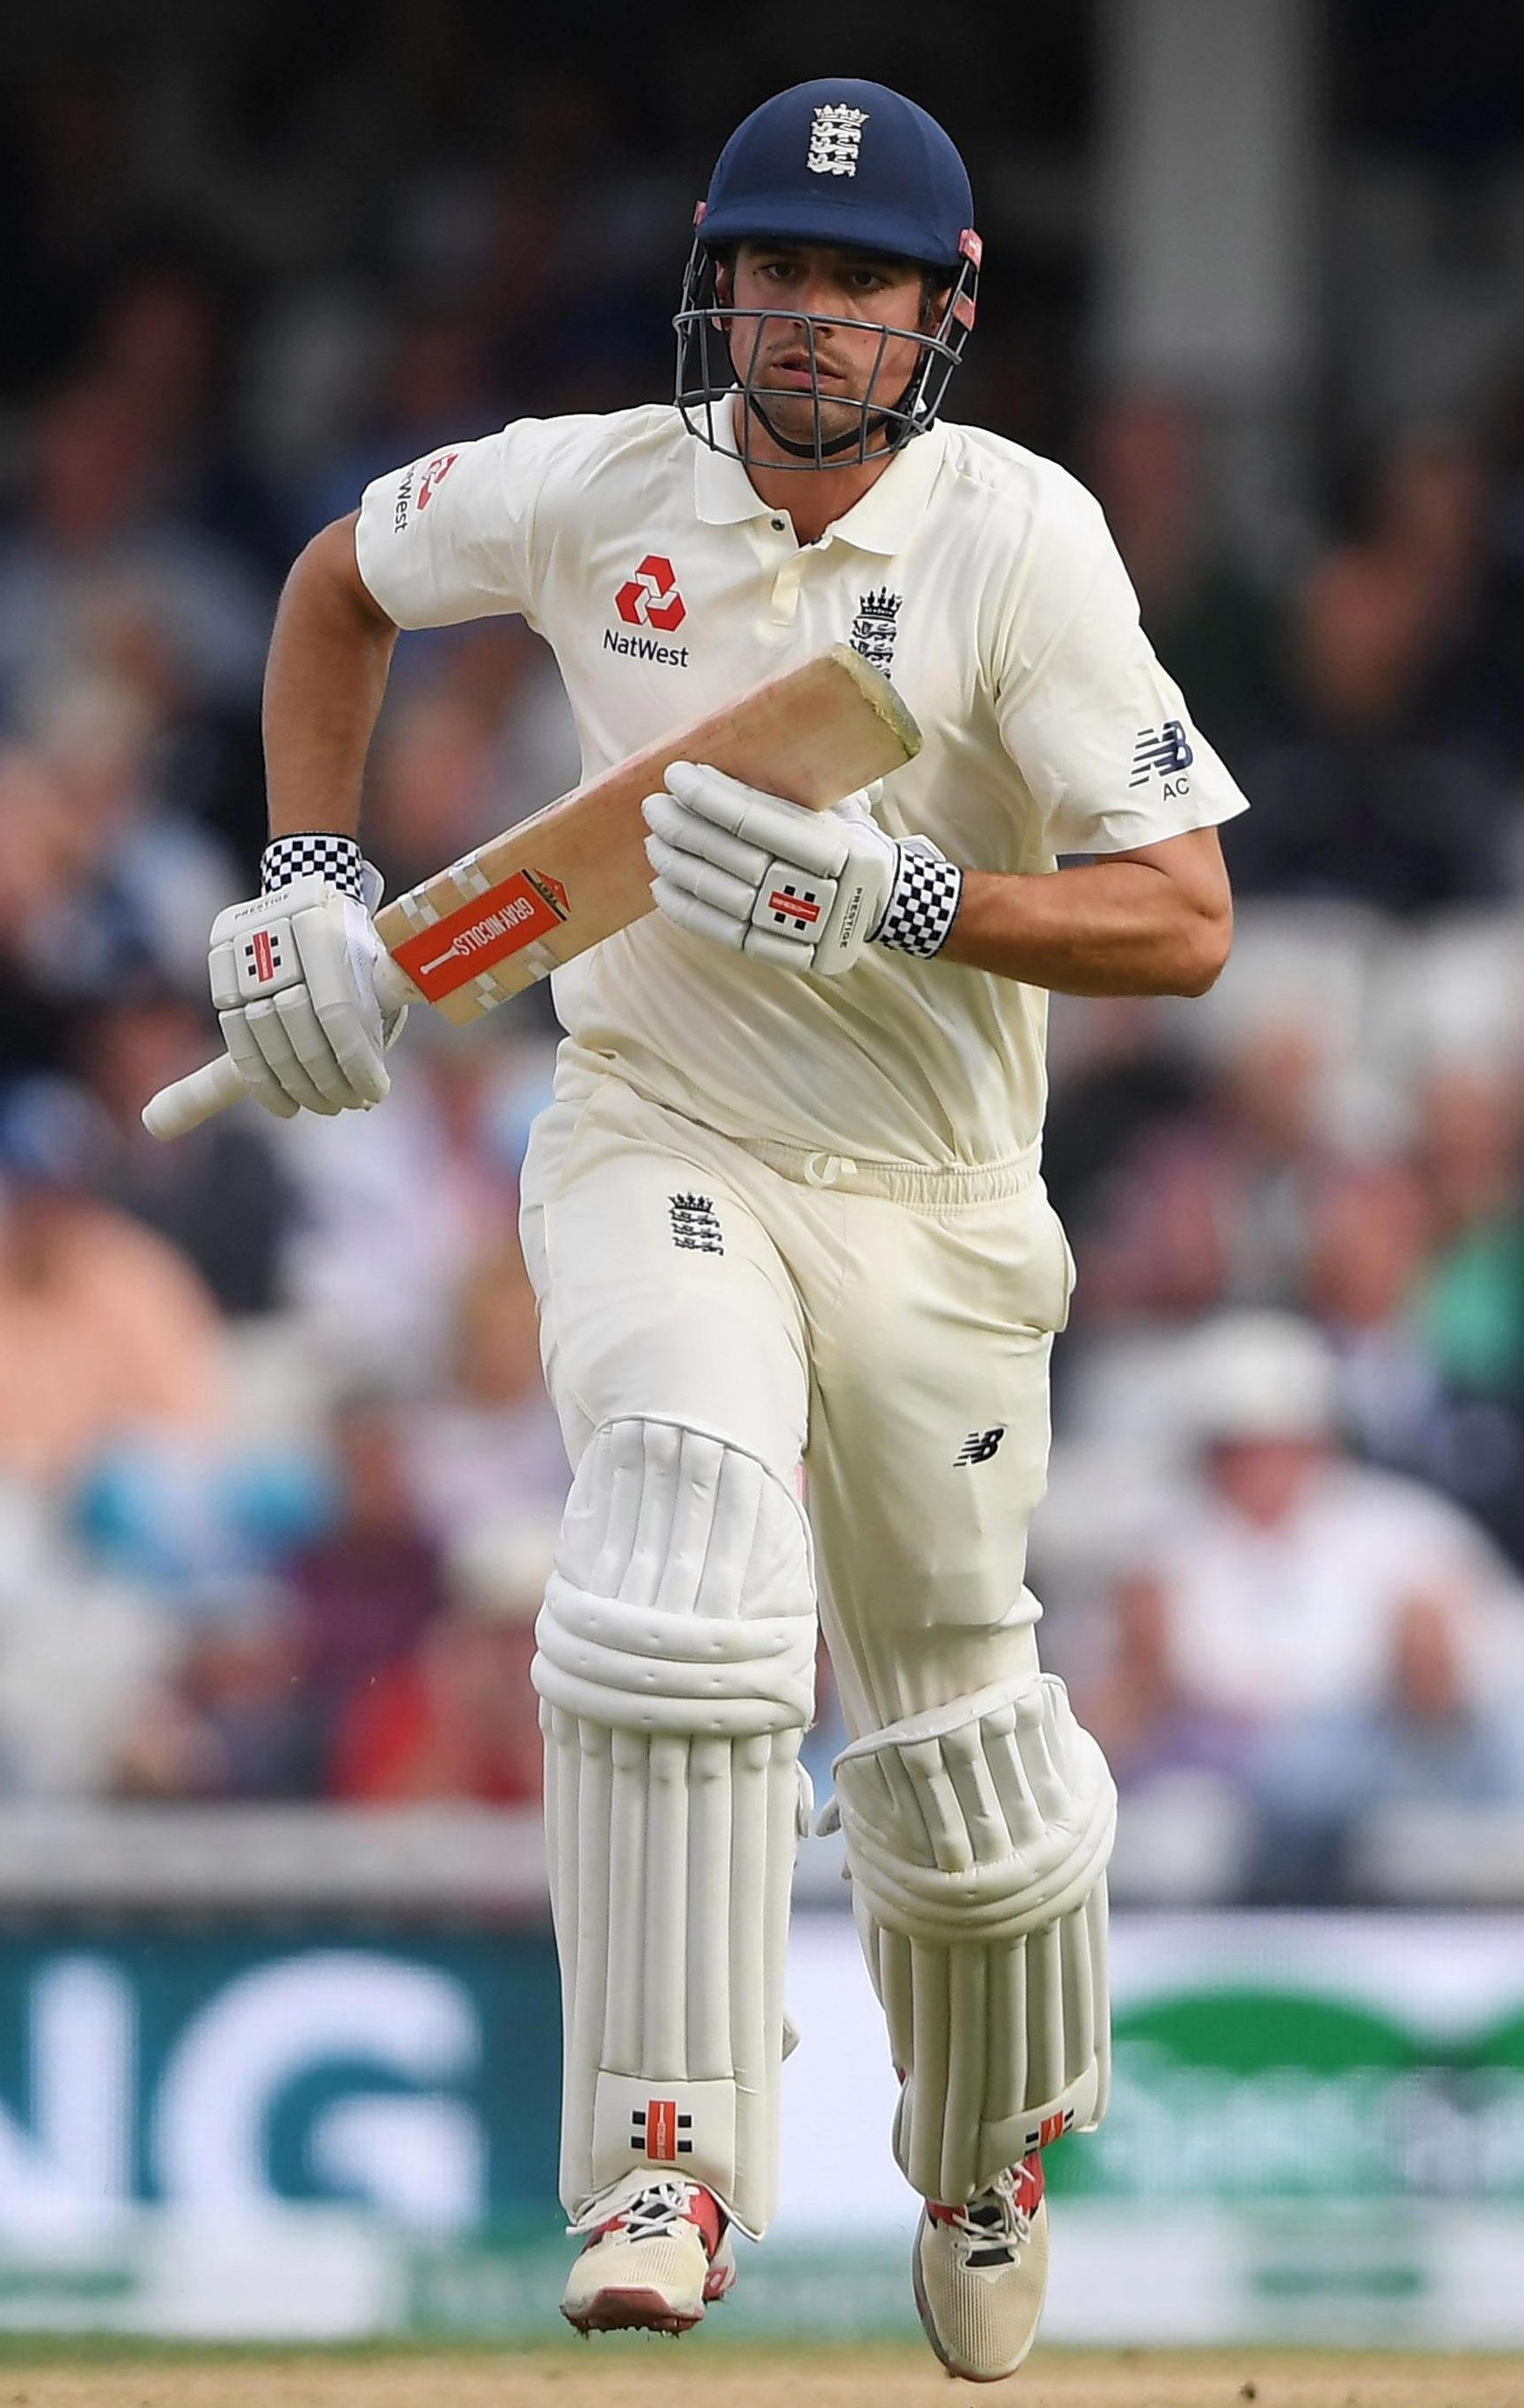 Legend Alastair Cook takes a quick single to boost his bid for a ton in his last Test innings